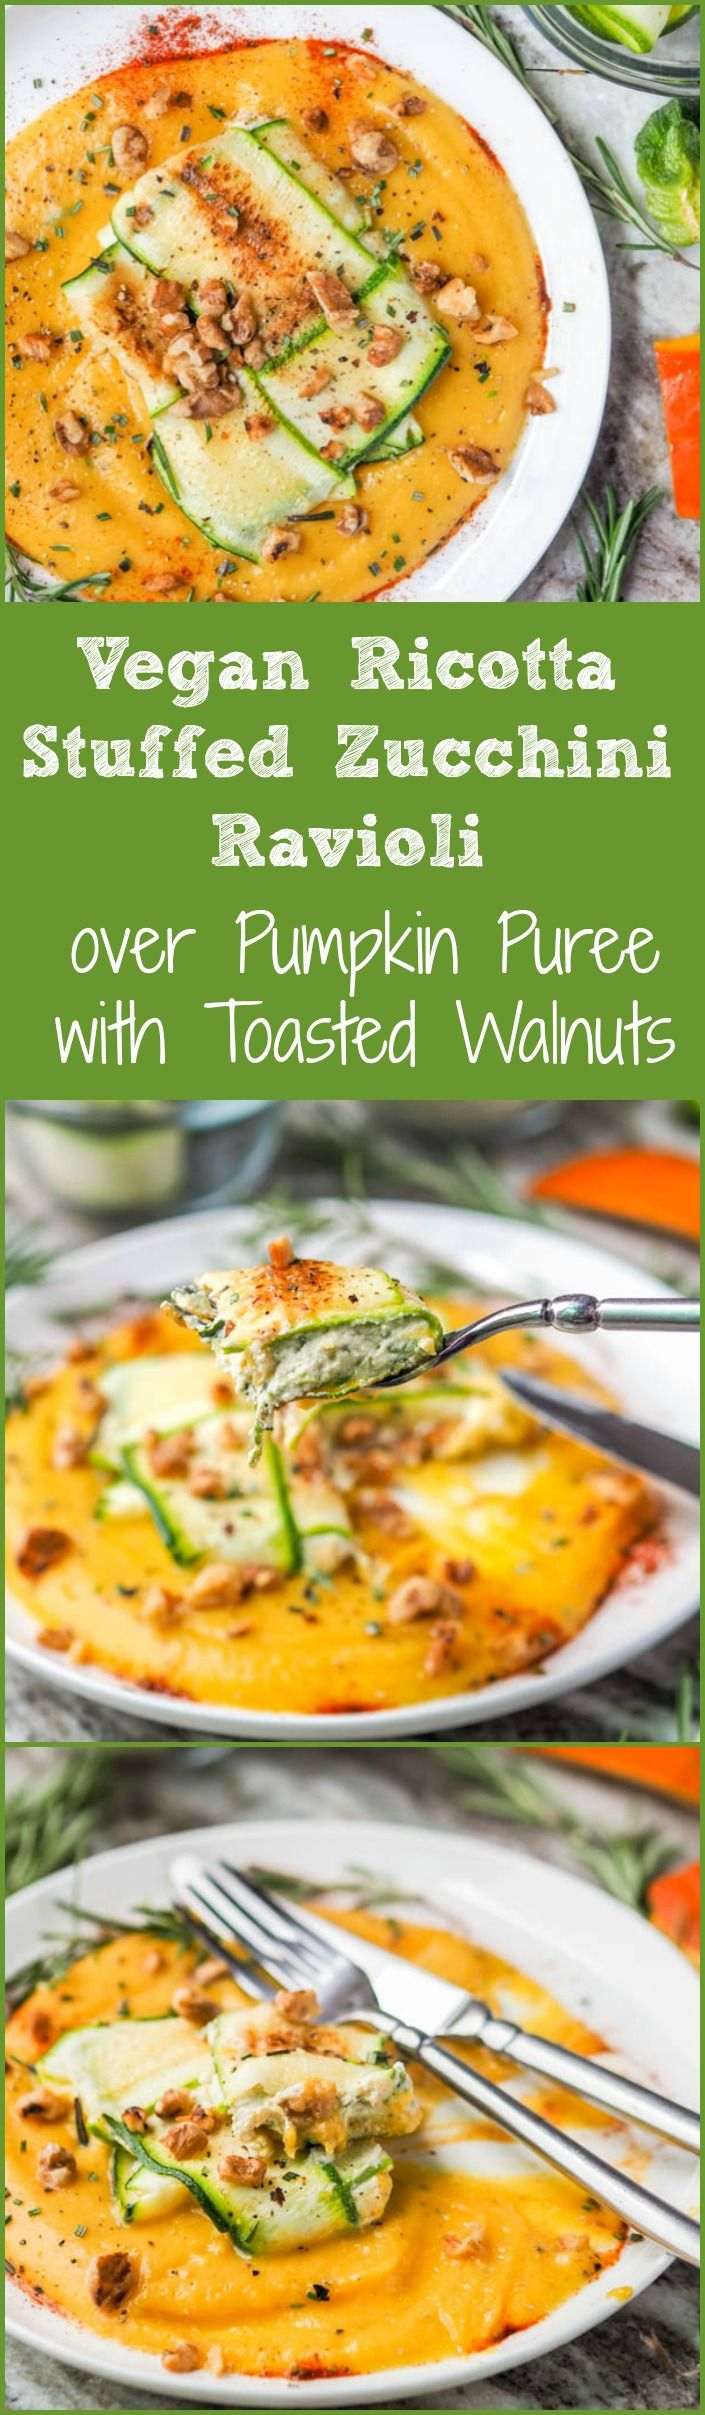 Your favorite fall pumpkin rosemary flavors topped with a vegan ricotta stuffed zucchini ravioli and sprinkled with toasted walnuts. Dinner doesn't get better than this. Low Carb, Paleo + Gluten Free too. Perfect healthy low carb pasta option. | avocadopesto.com